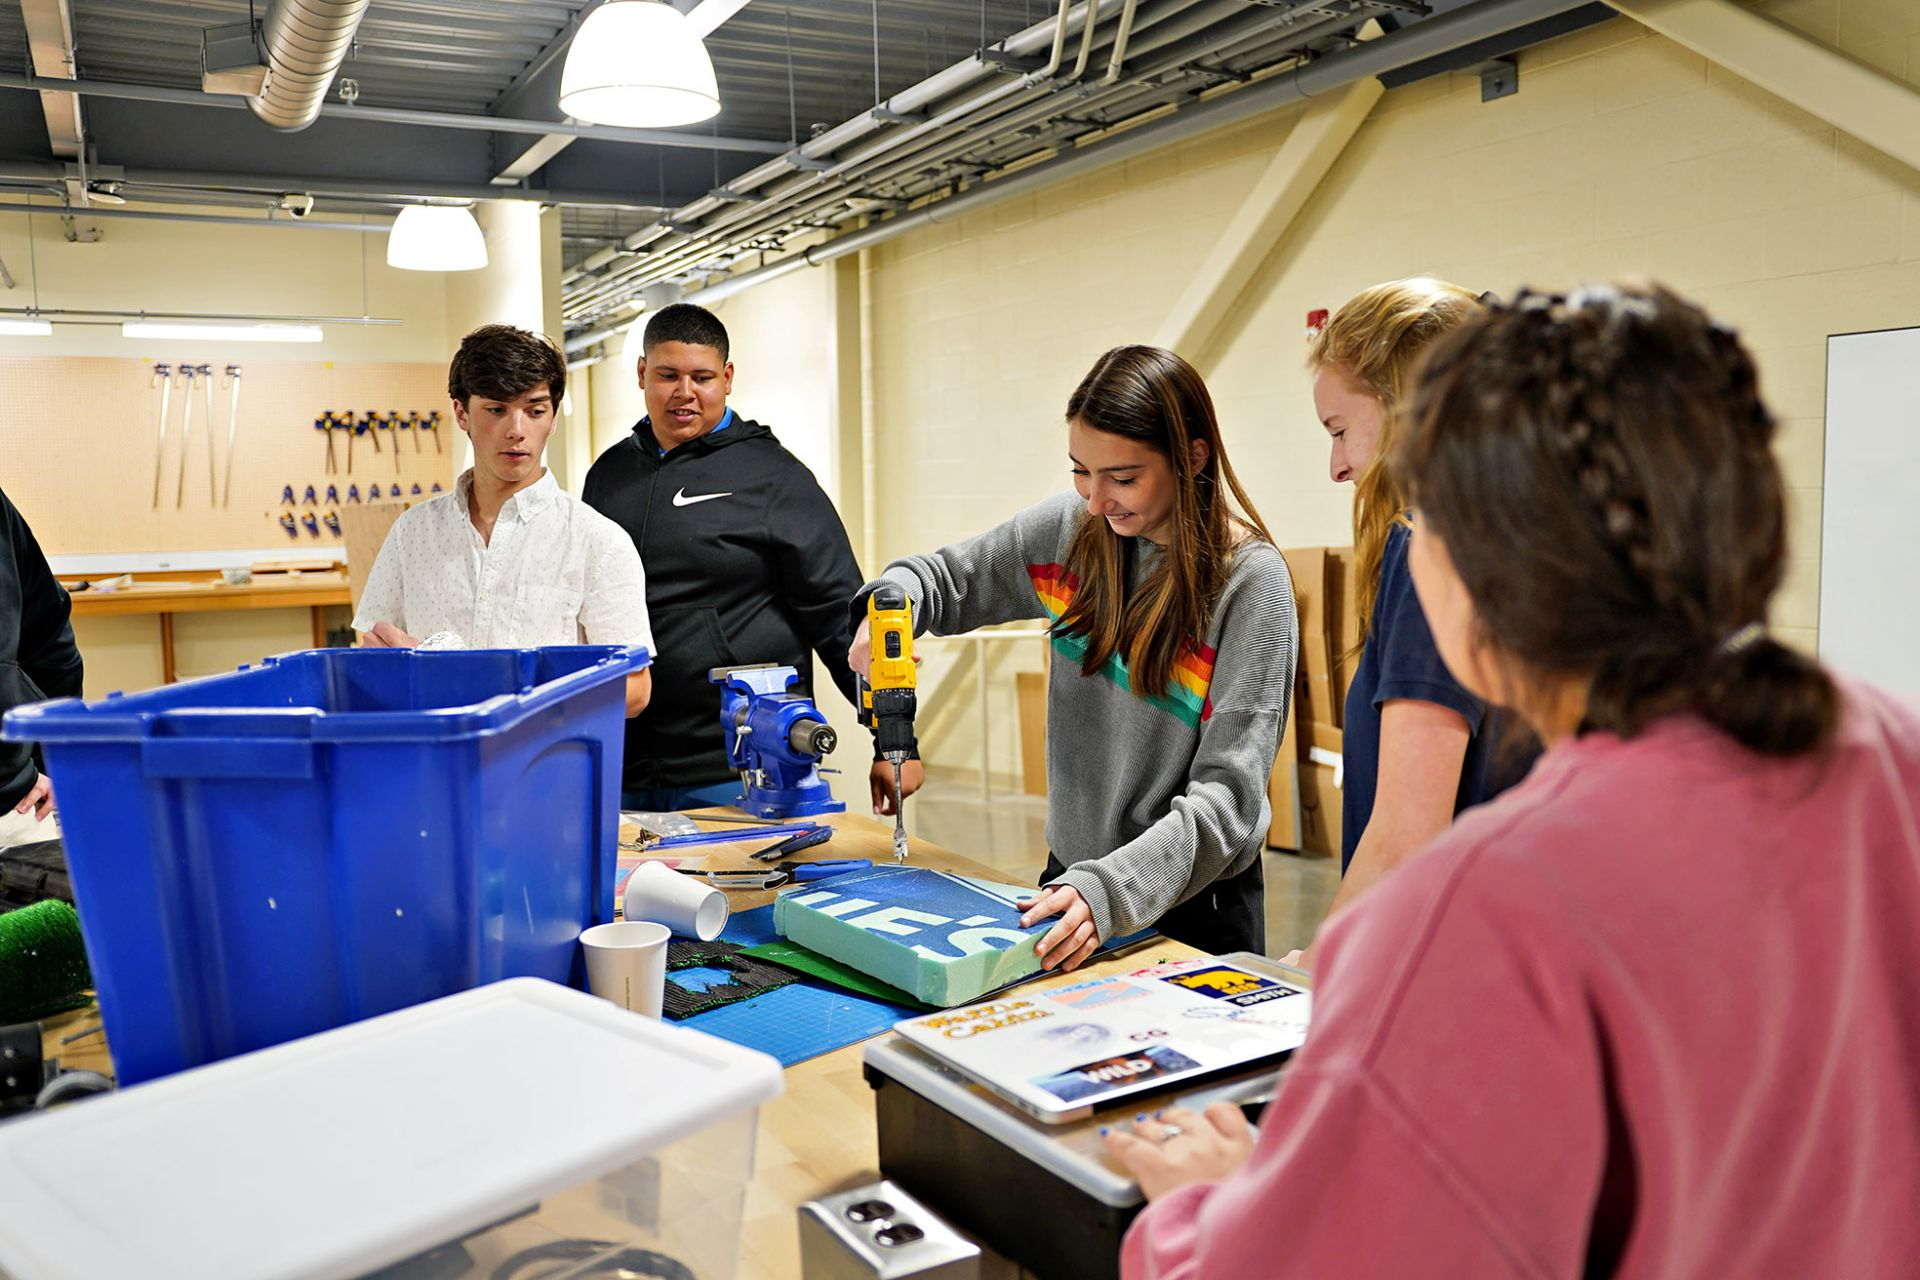 Students use power drills to construct project in designLab.